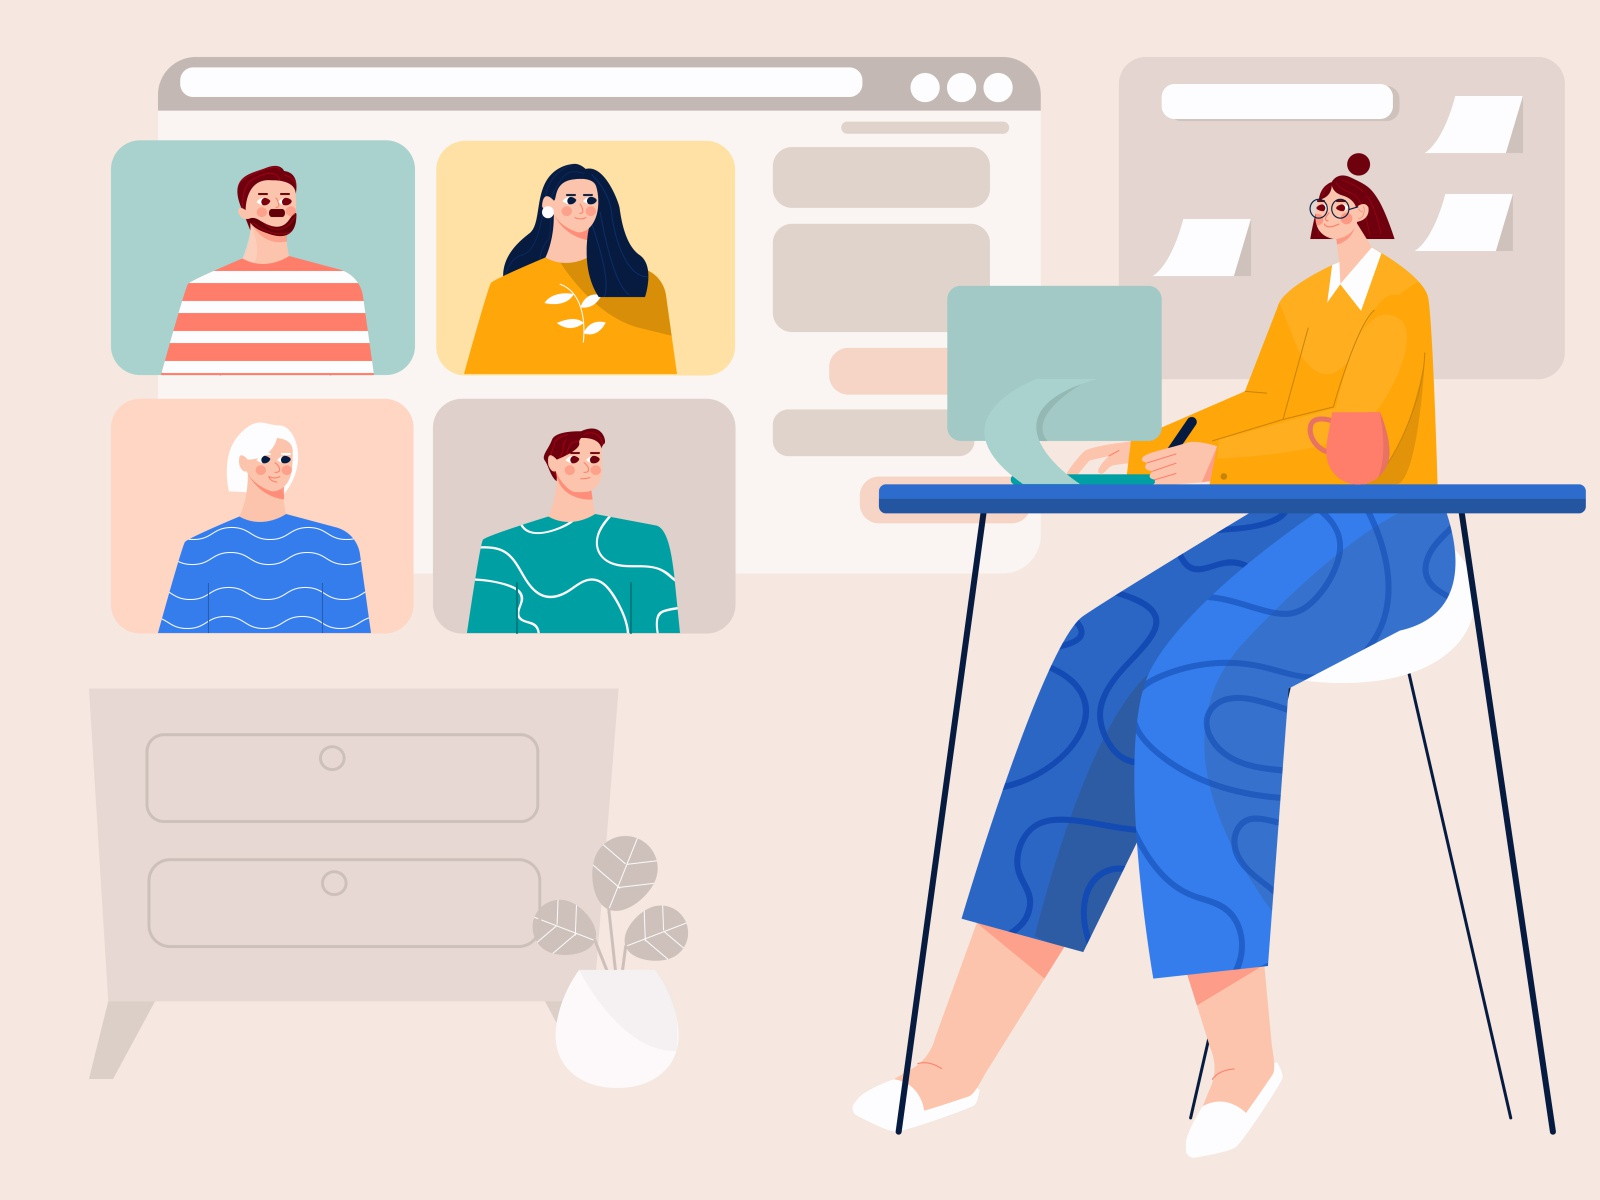 Virtual meeting with the team illustration by uigo